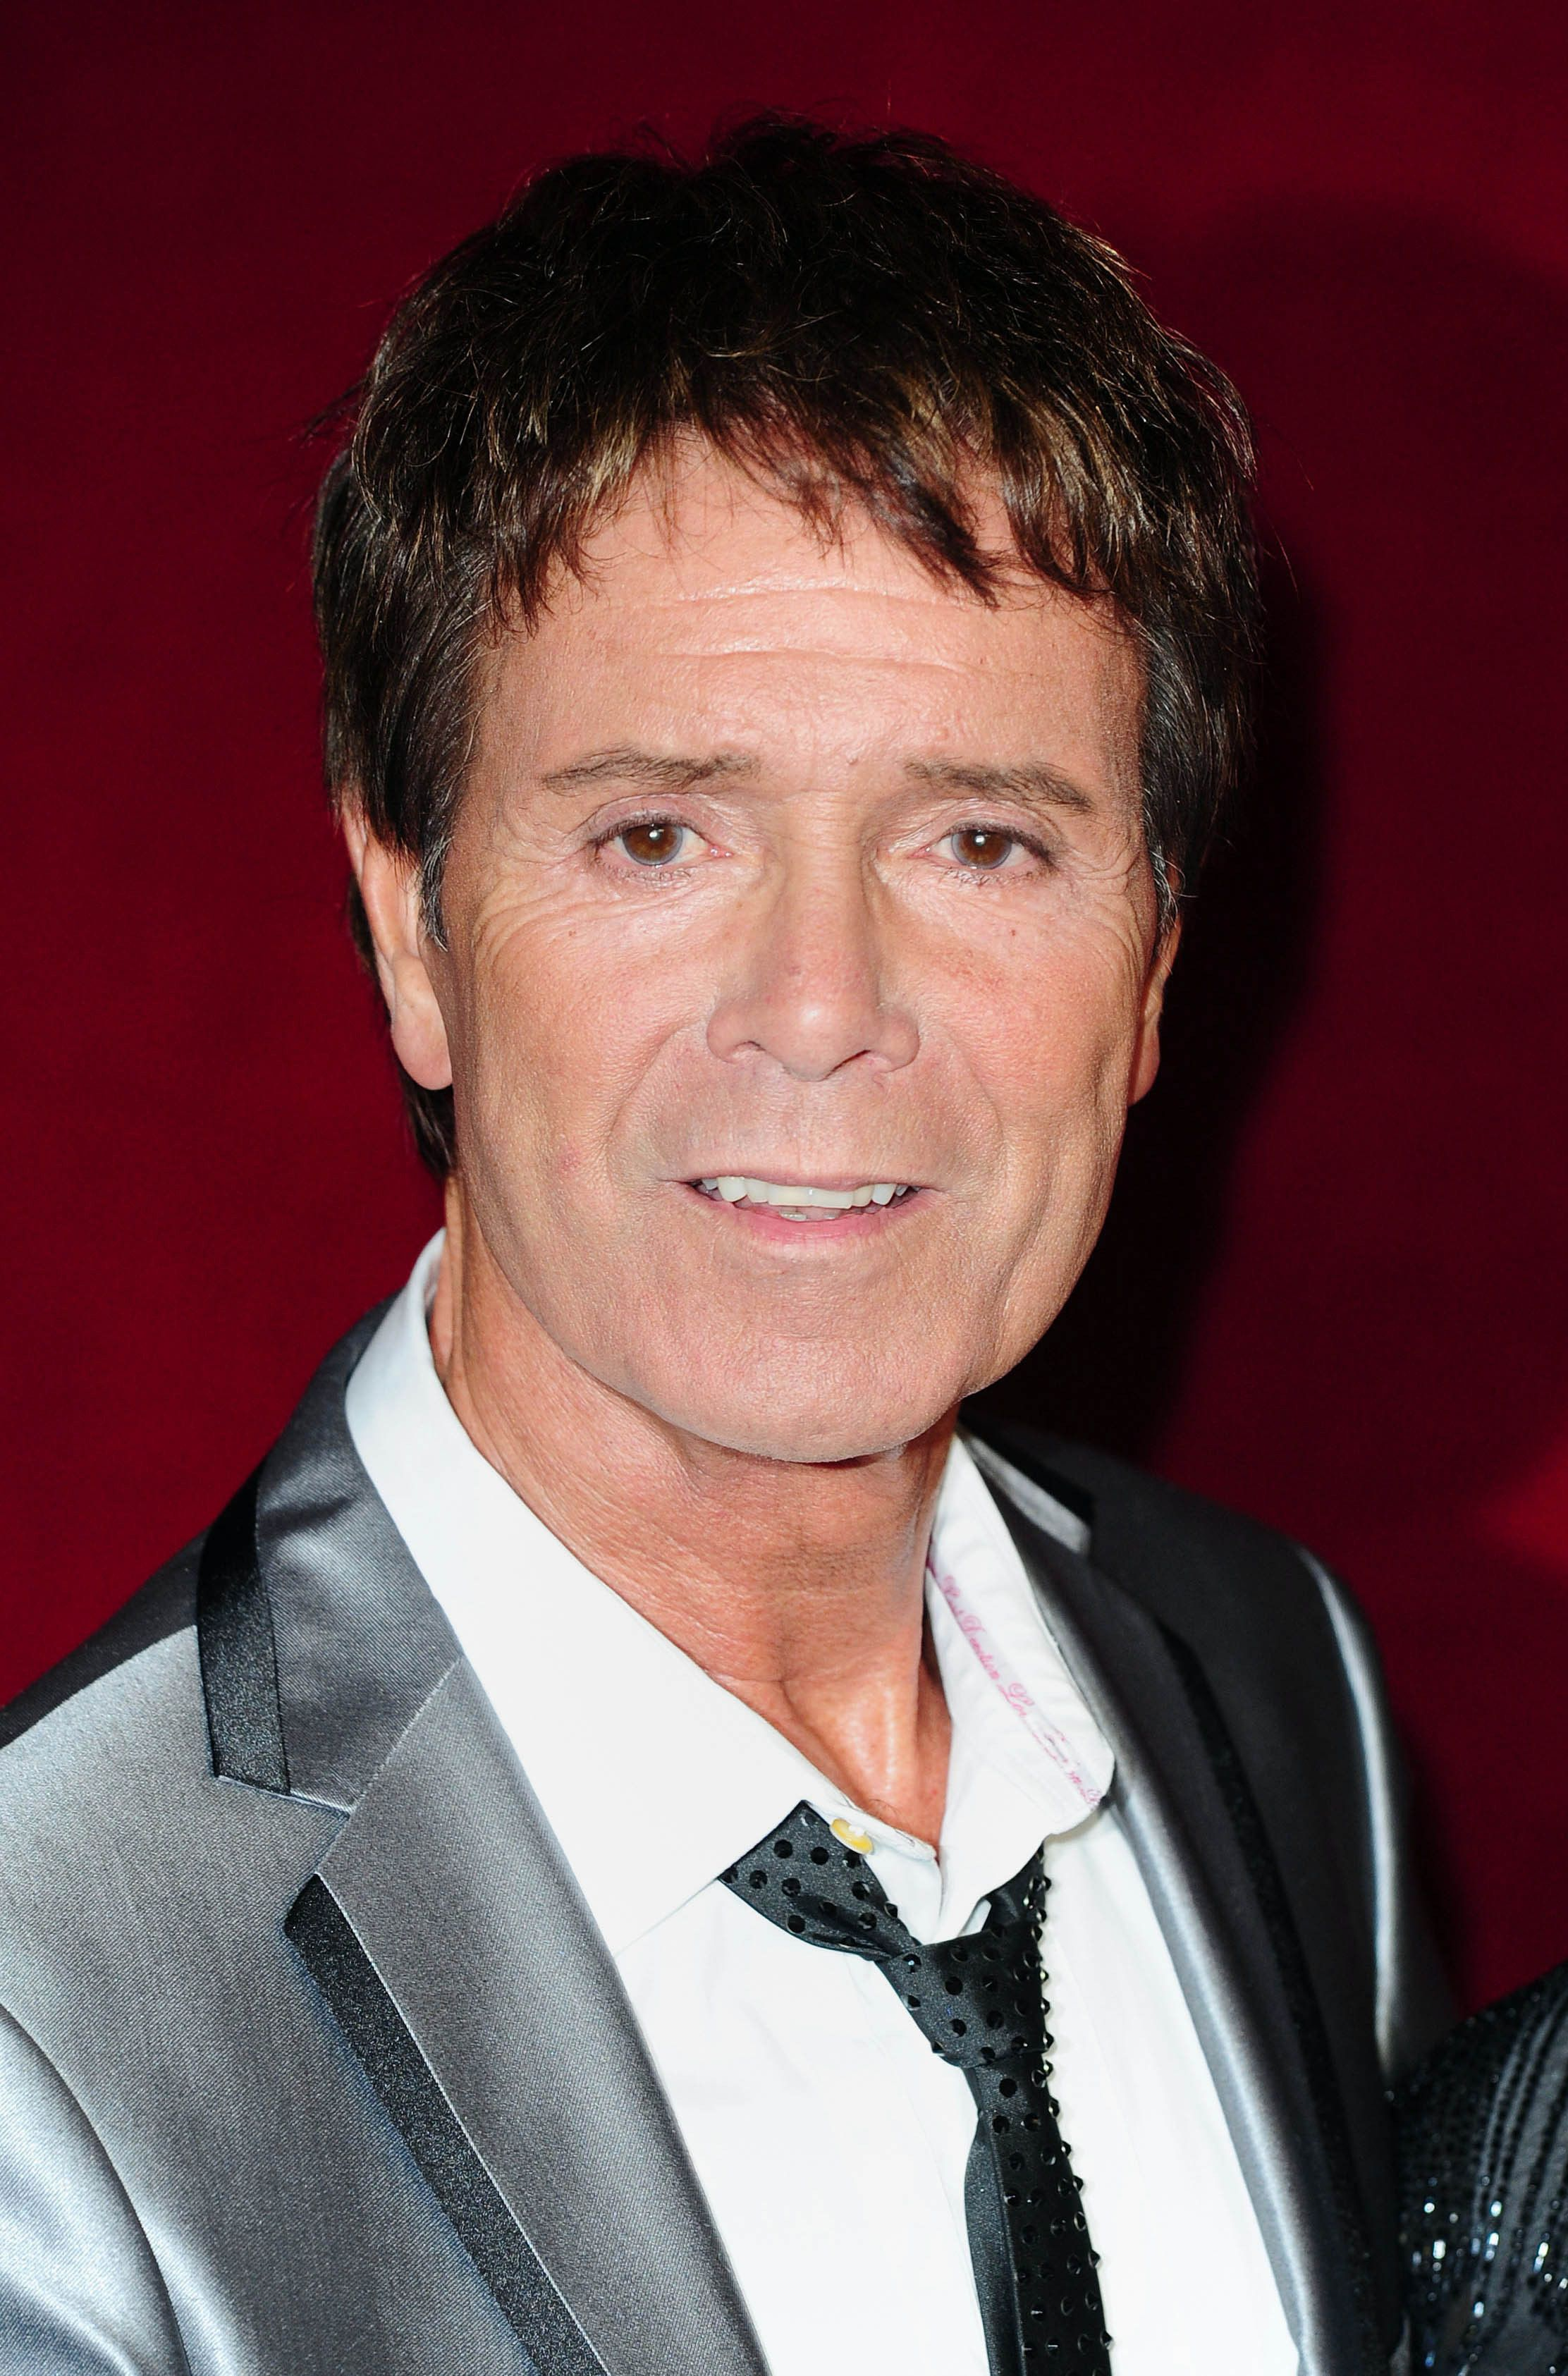 Cliff Richard Reveals He's 'Too Frightened To Touch Young Fans